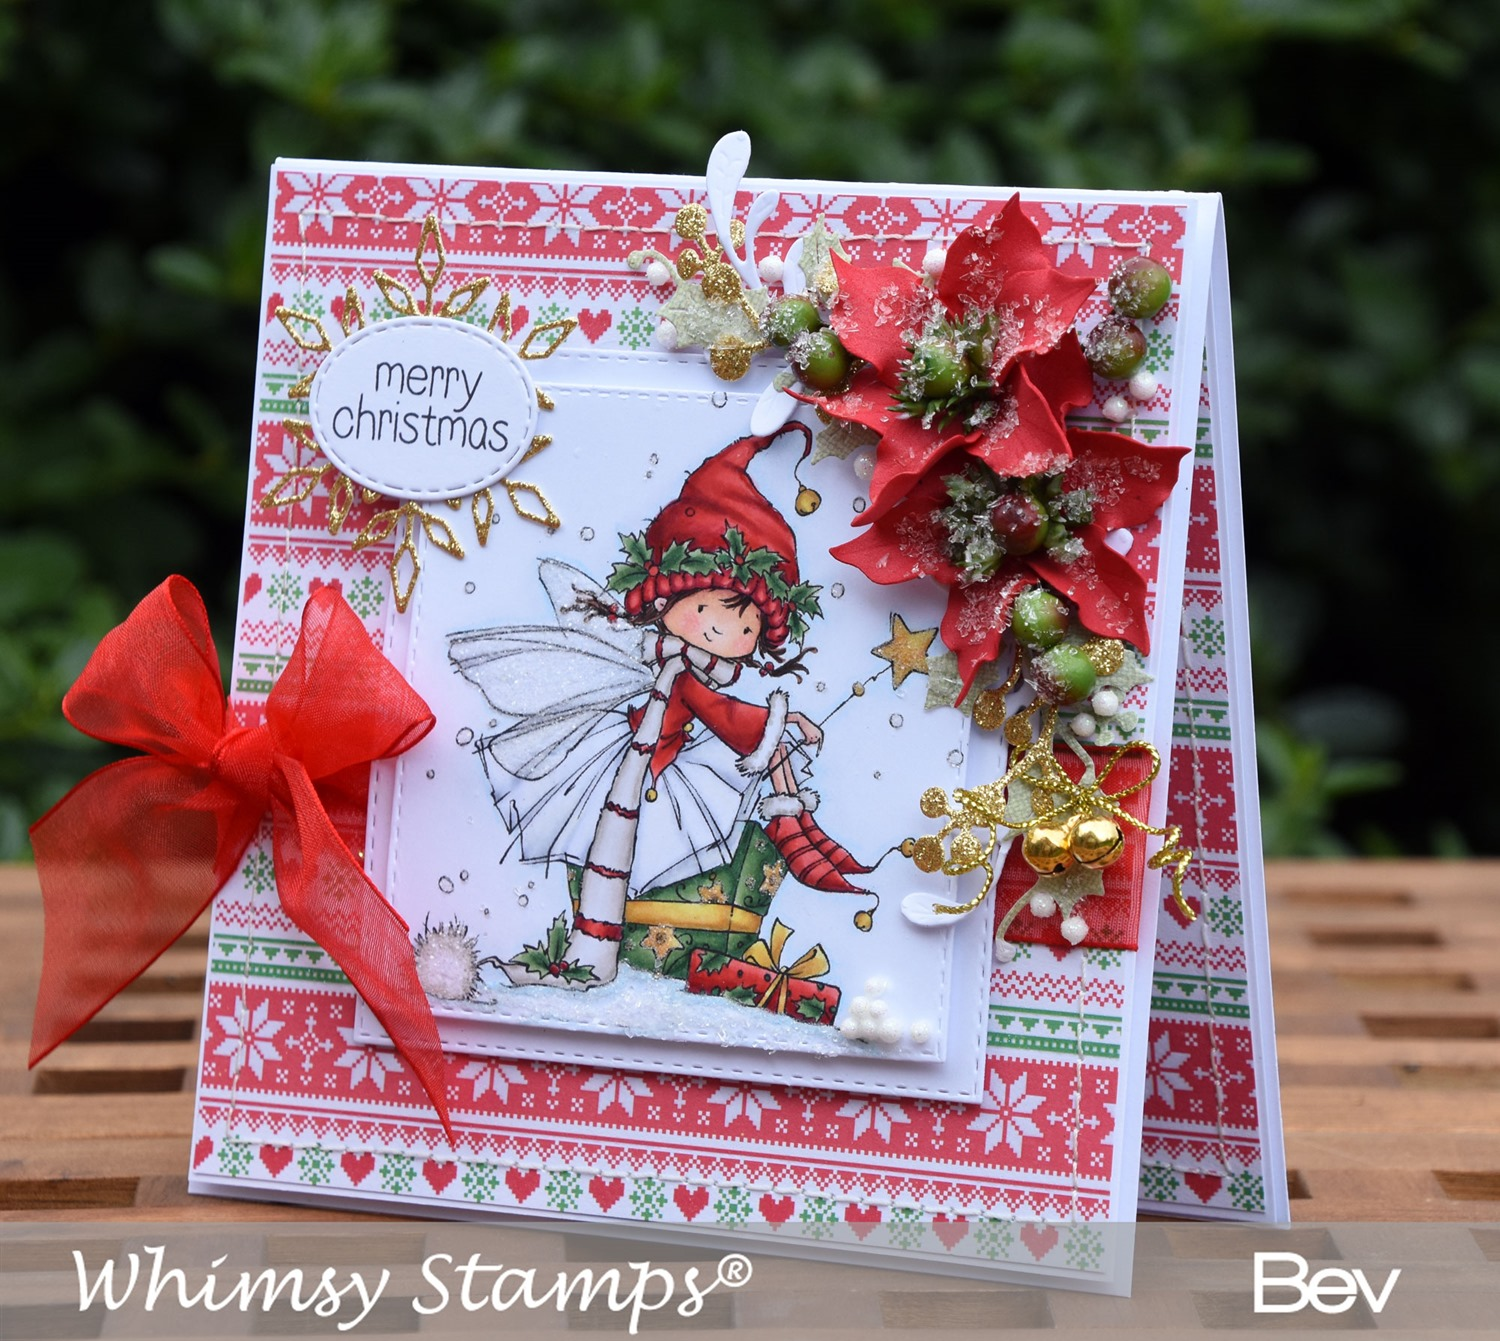 [bev-rochester-whimsy-stamps-christmas-sprite4%5B2%5D]